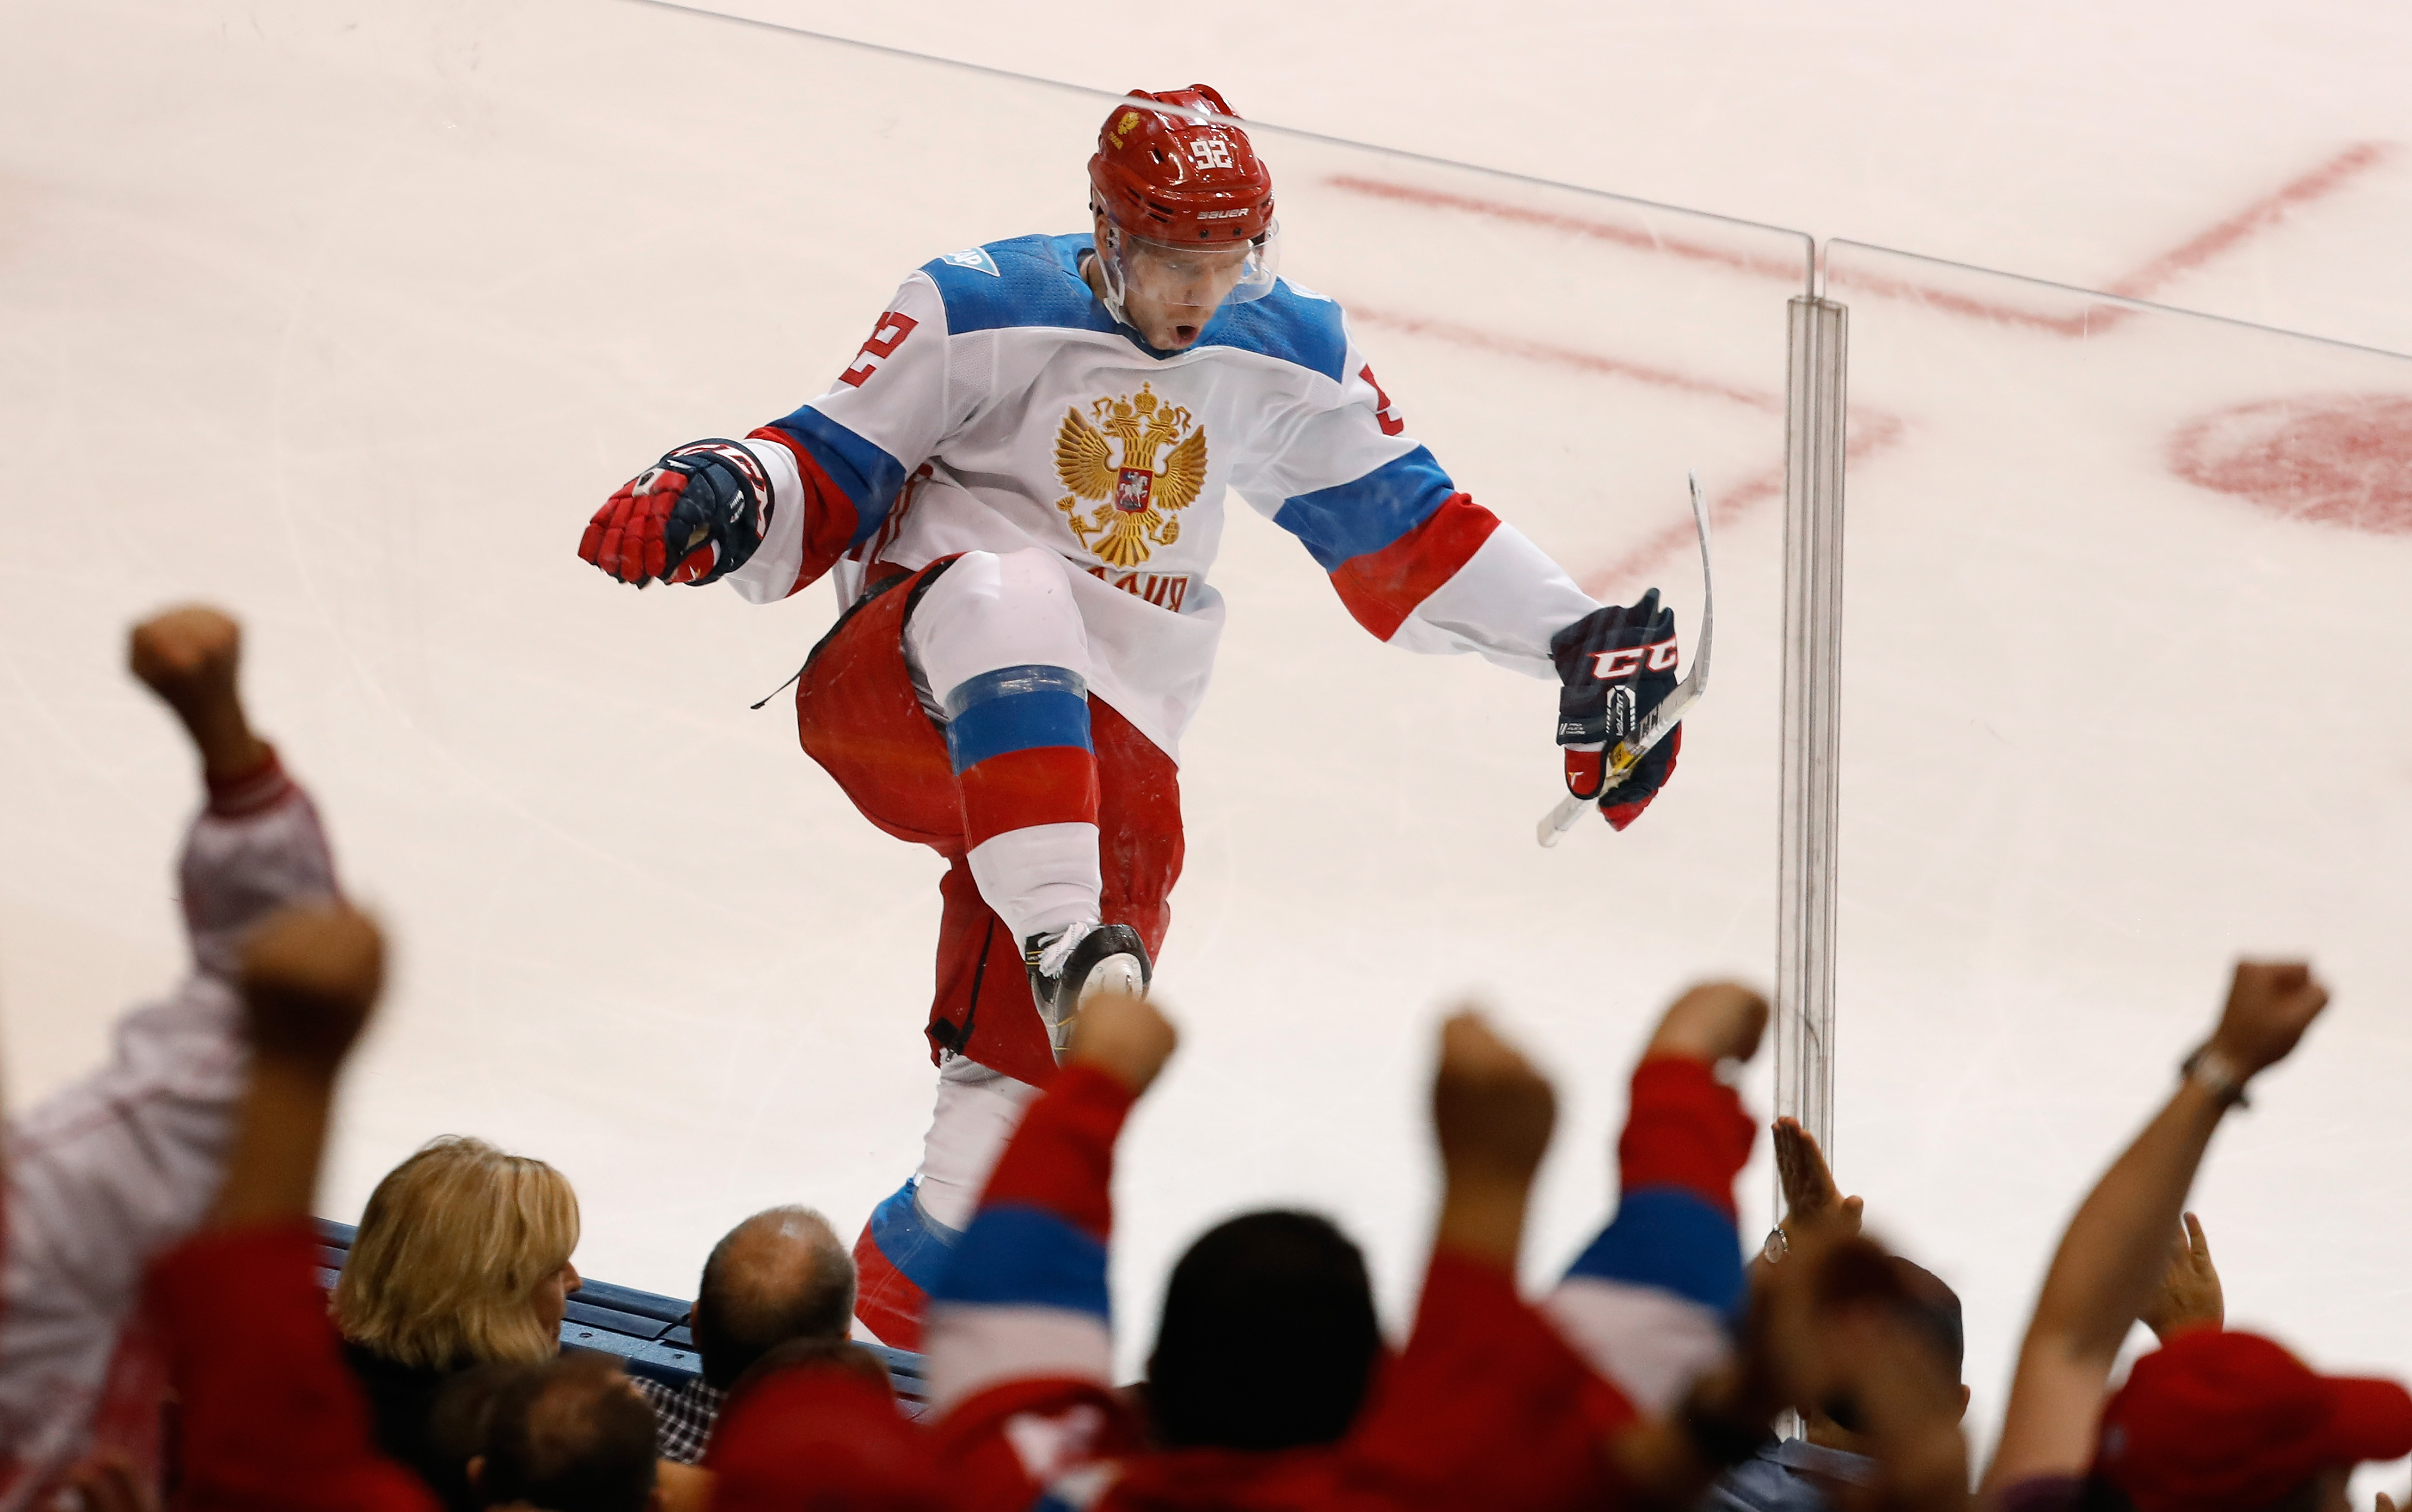 KHL: NHL Free Agents Might Join The Russian League To Play In The 2018 Olympics